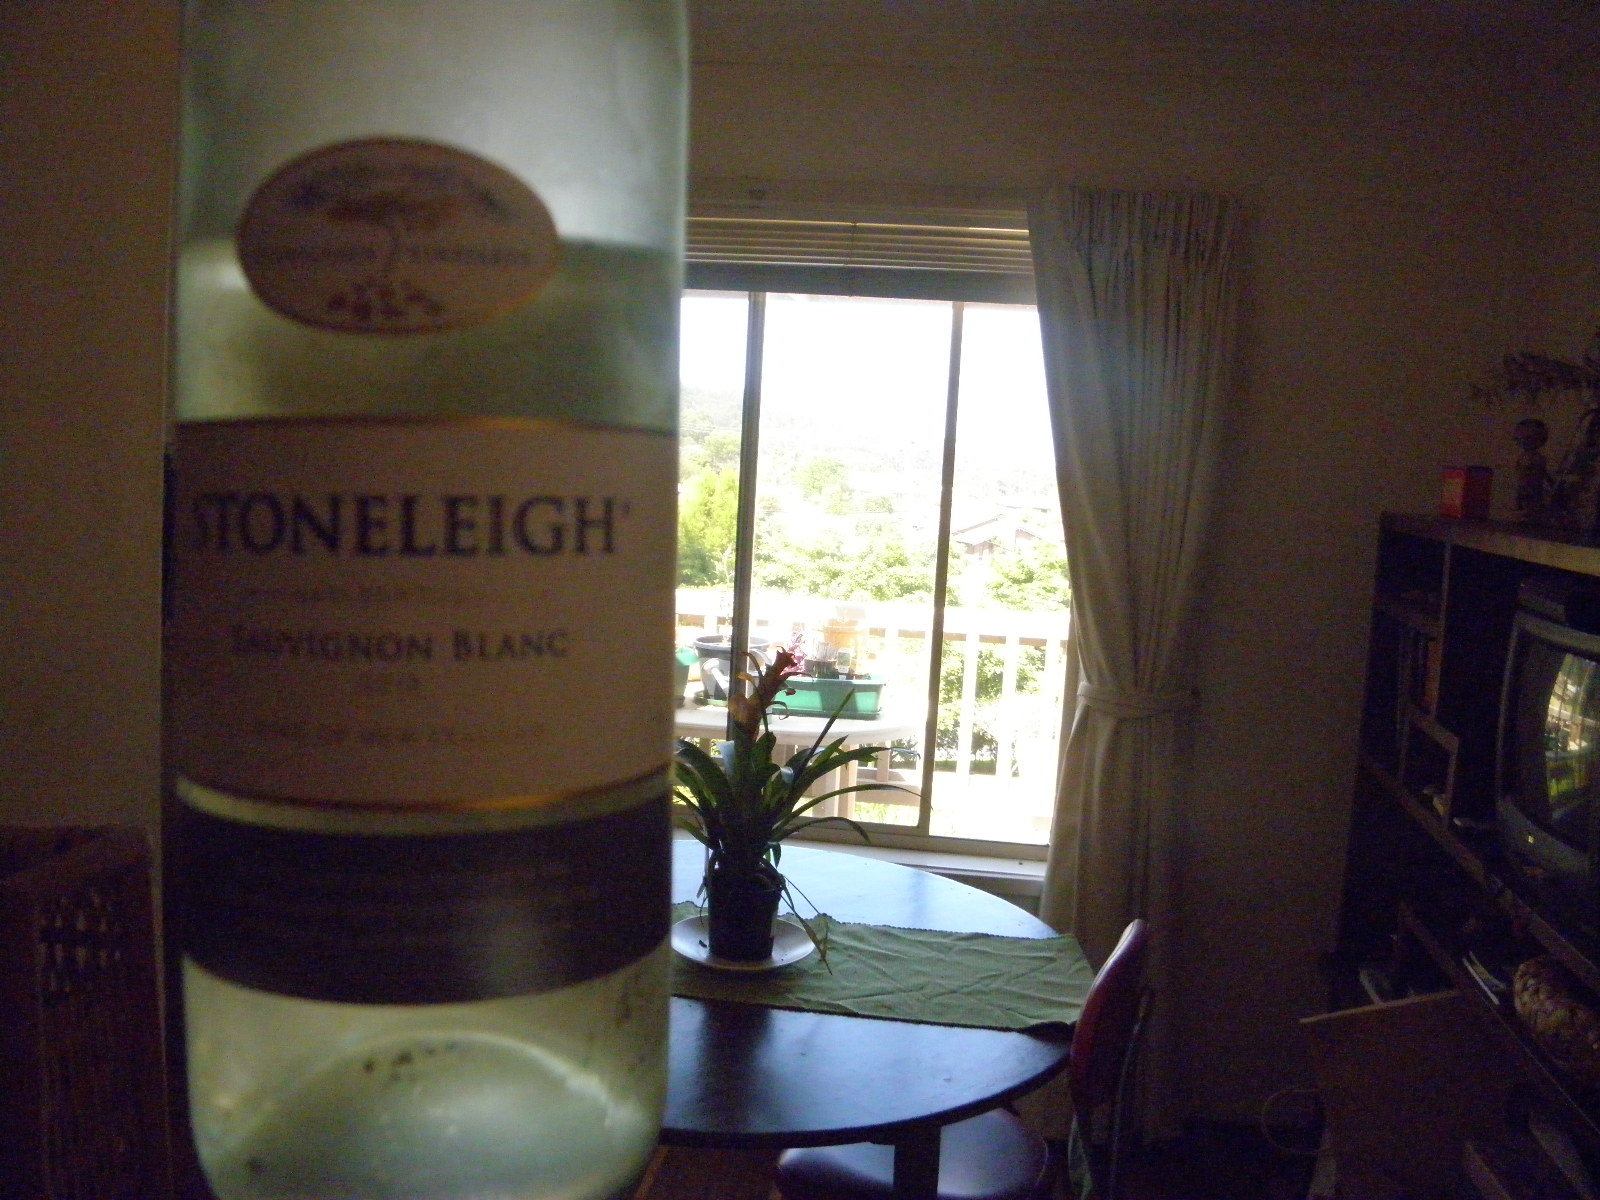 bottle of stoneleigh sauv blanc